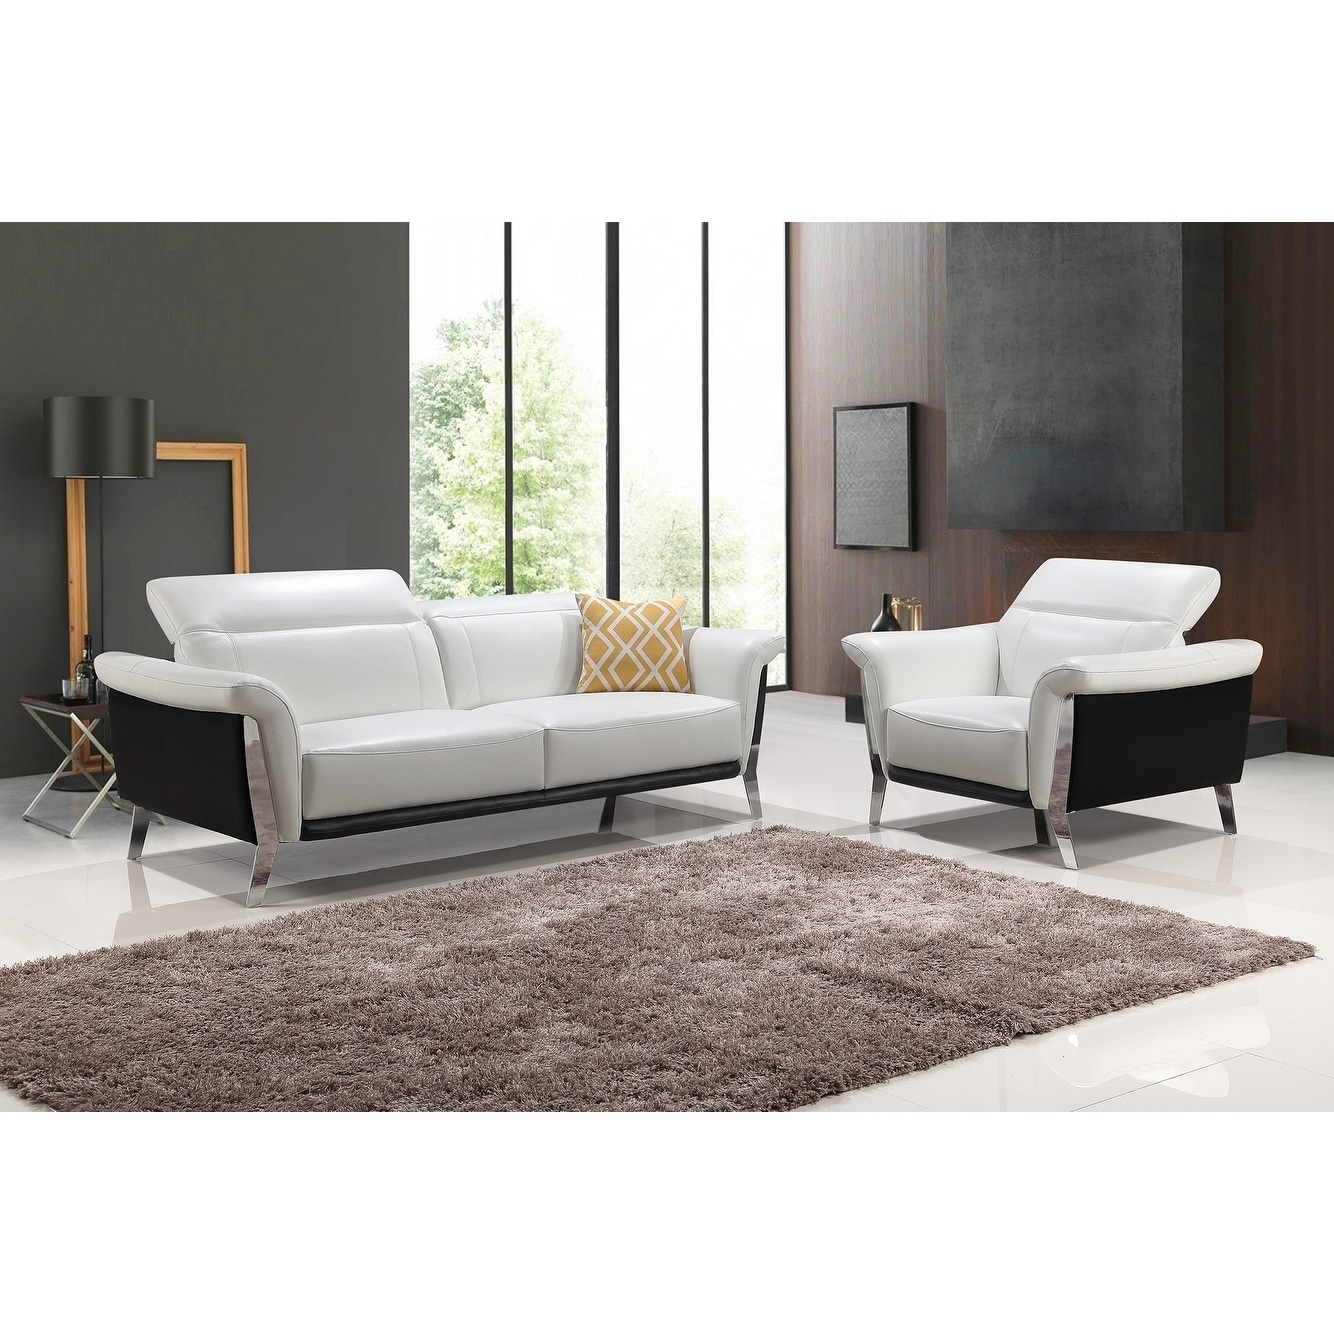 6862d8ee2724 Shop Best Master Furniture Black/ White 3 Pieces Set - Free Shipping Today  - Overstock - 20378499